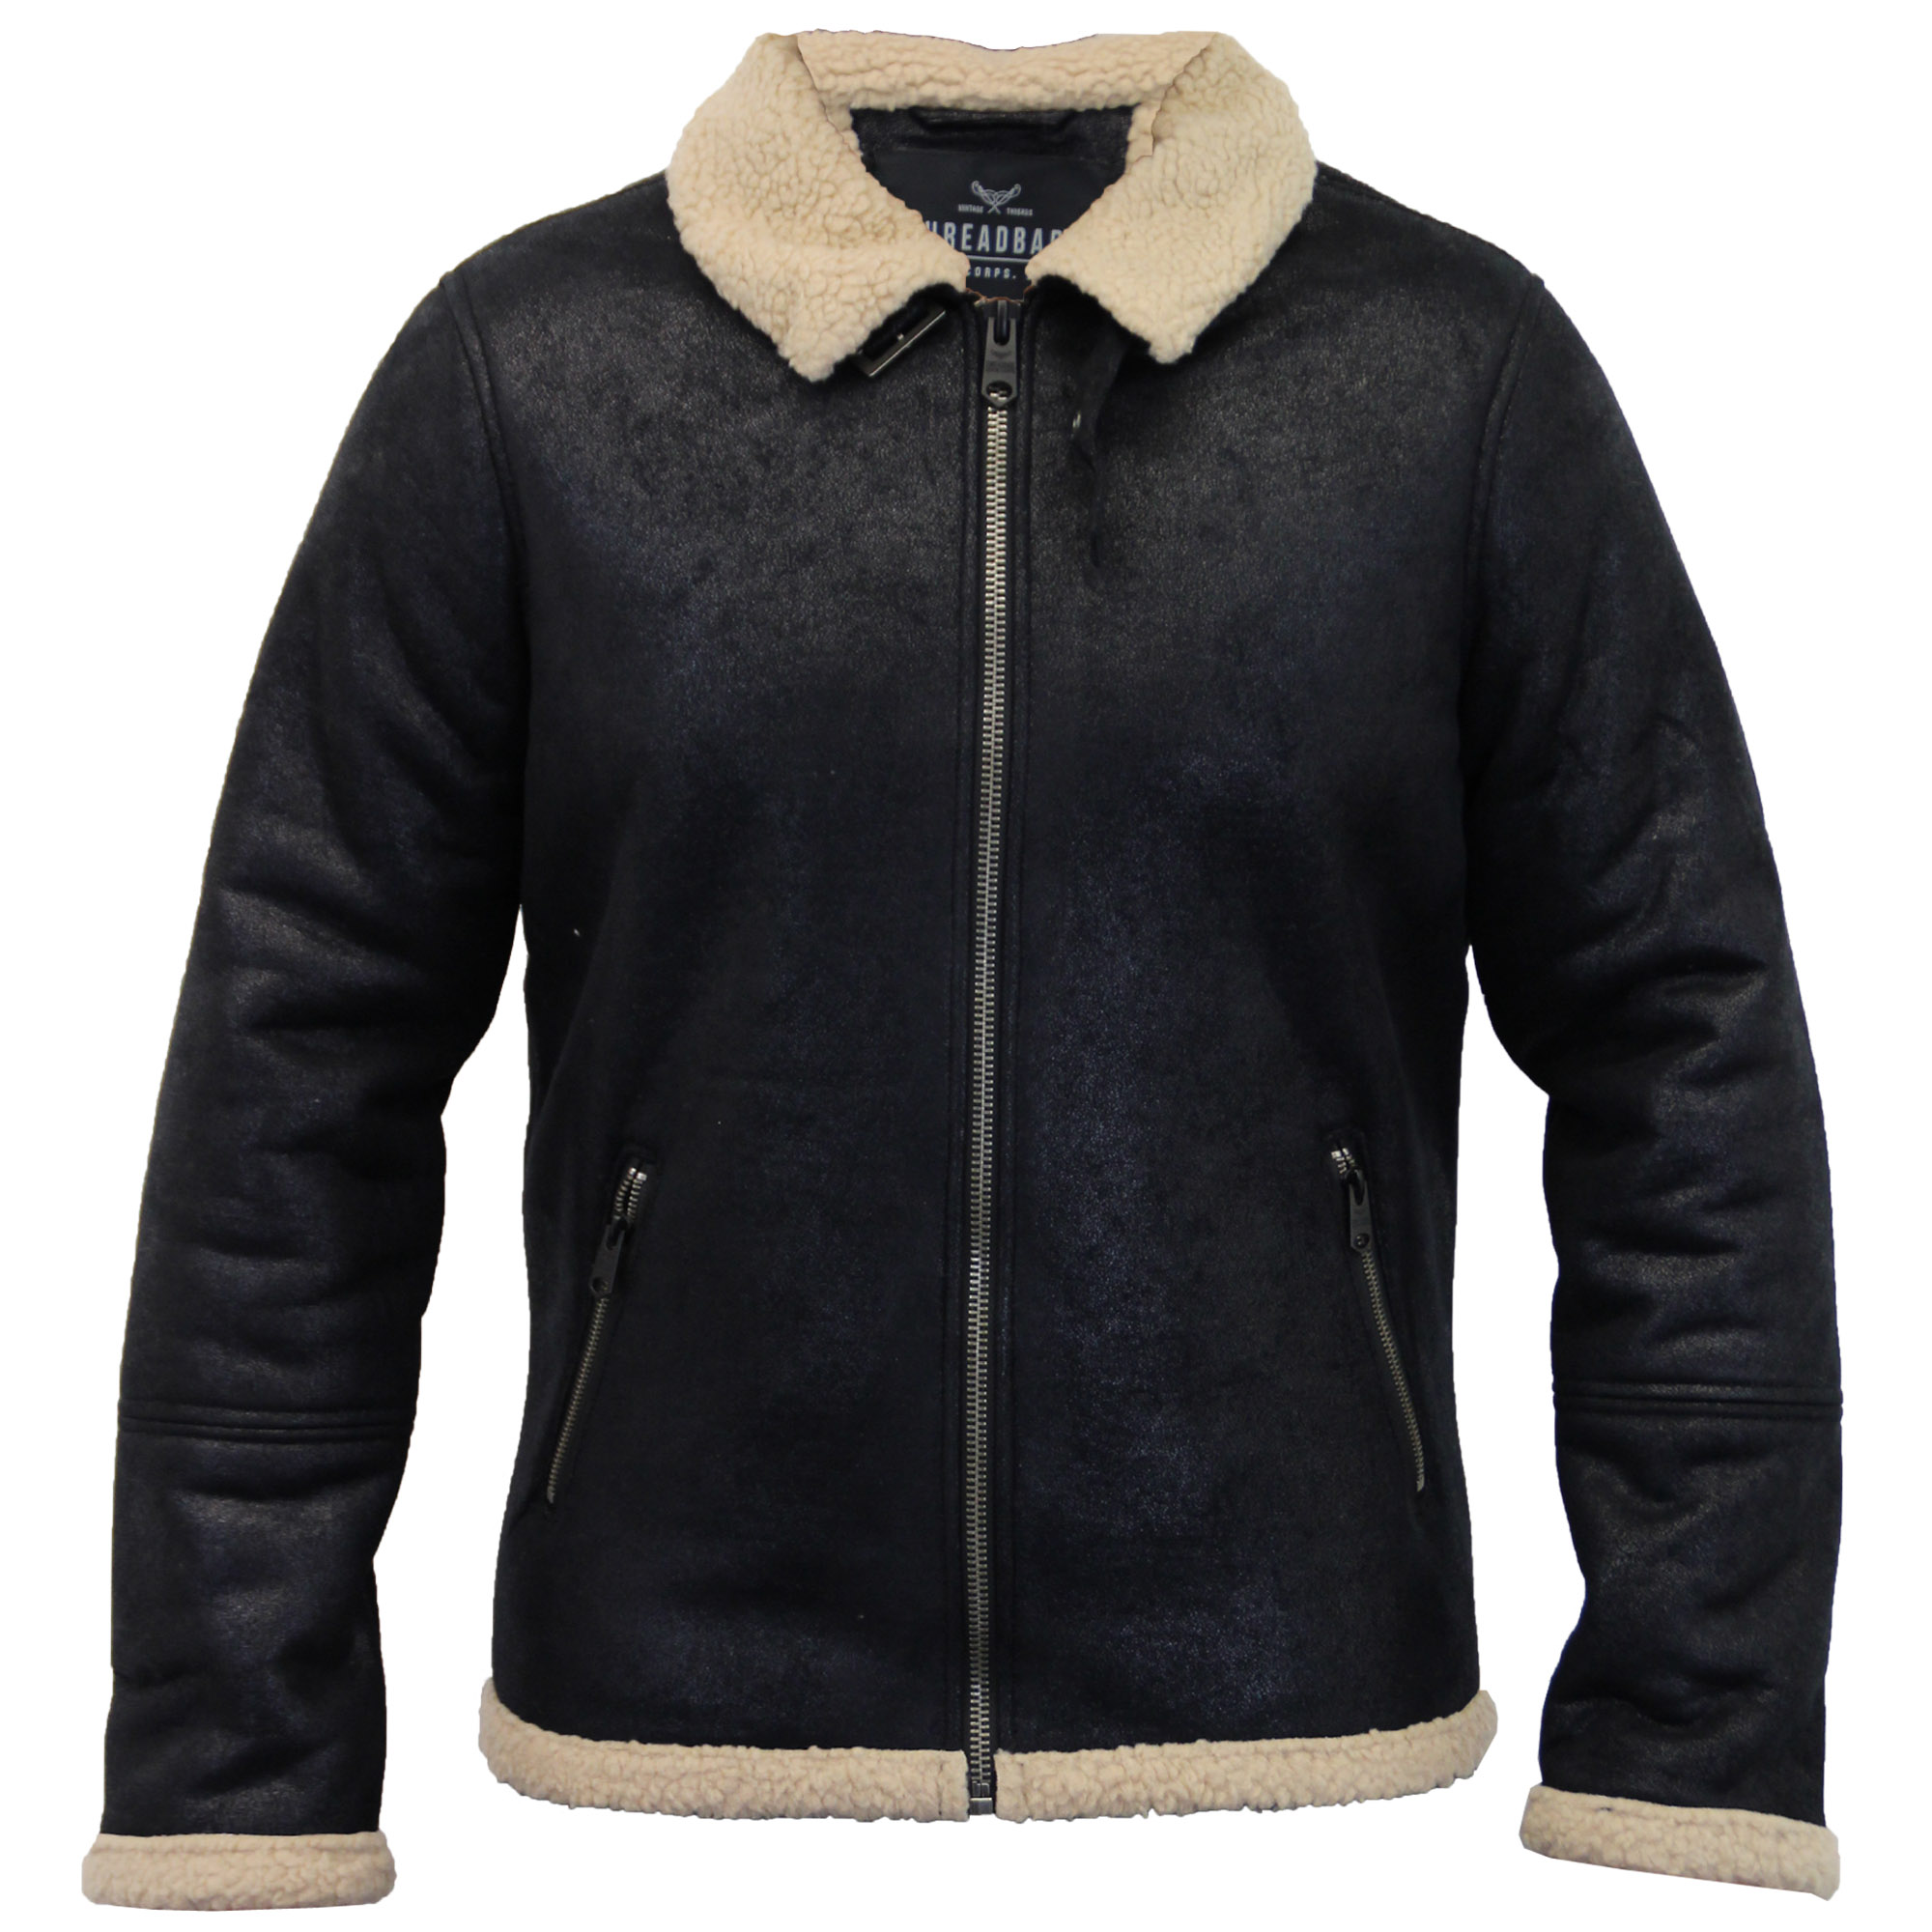 Find great deals on eBay for sherpa mens jacket. Shop with confidence.